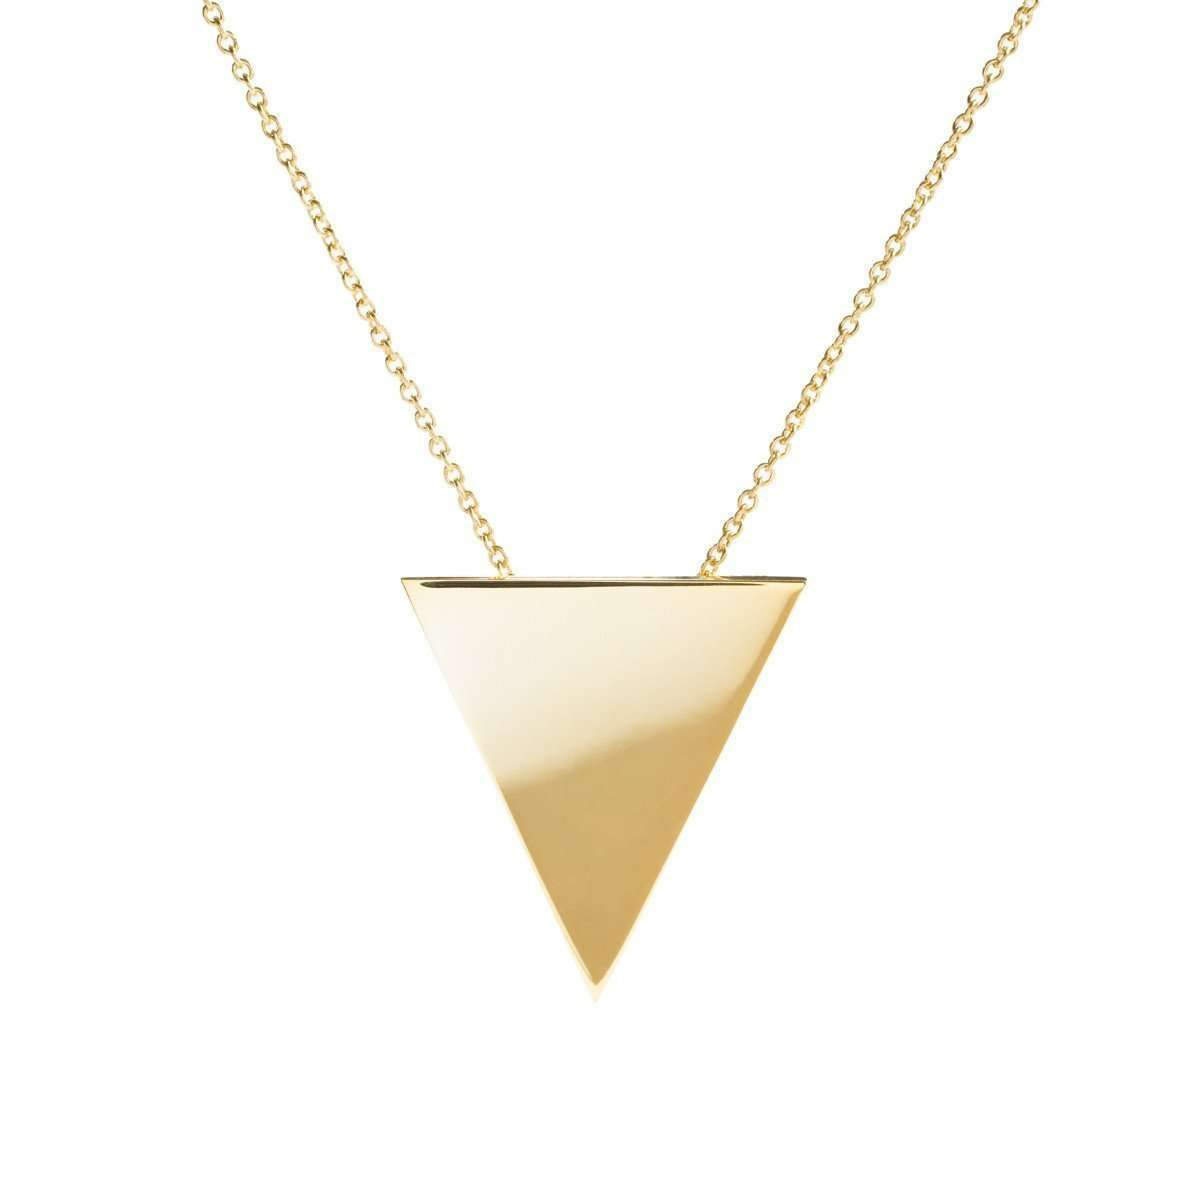 Metrica Vermeil Tri Necklace-Ali Haley-JewelStreet US